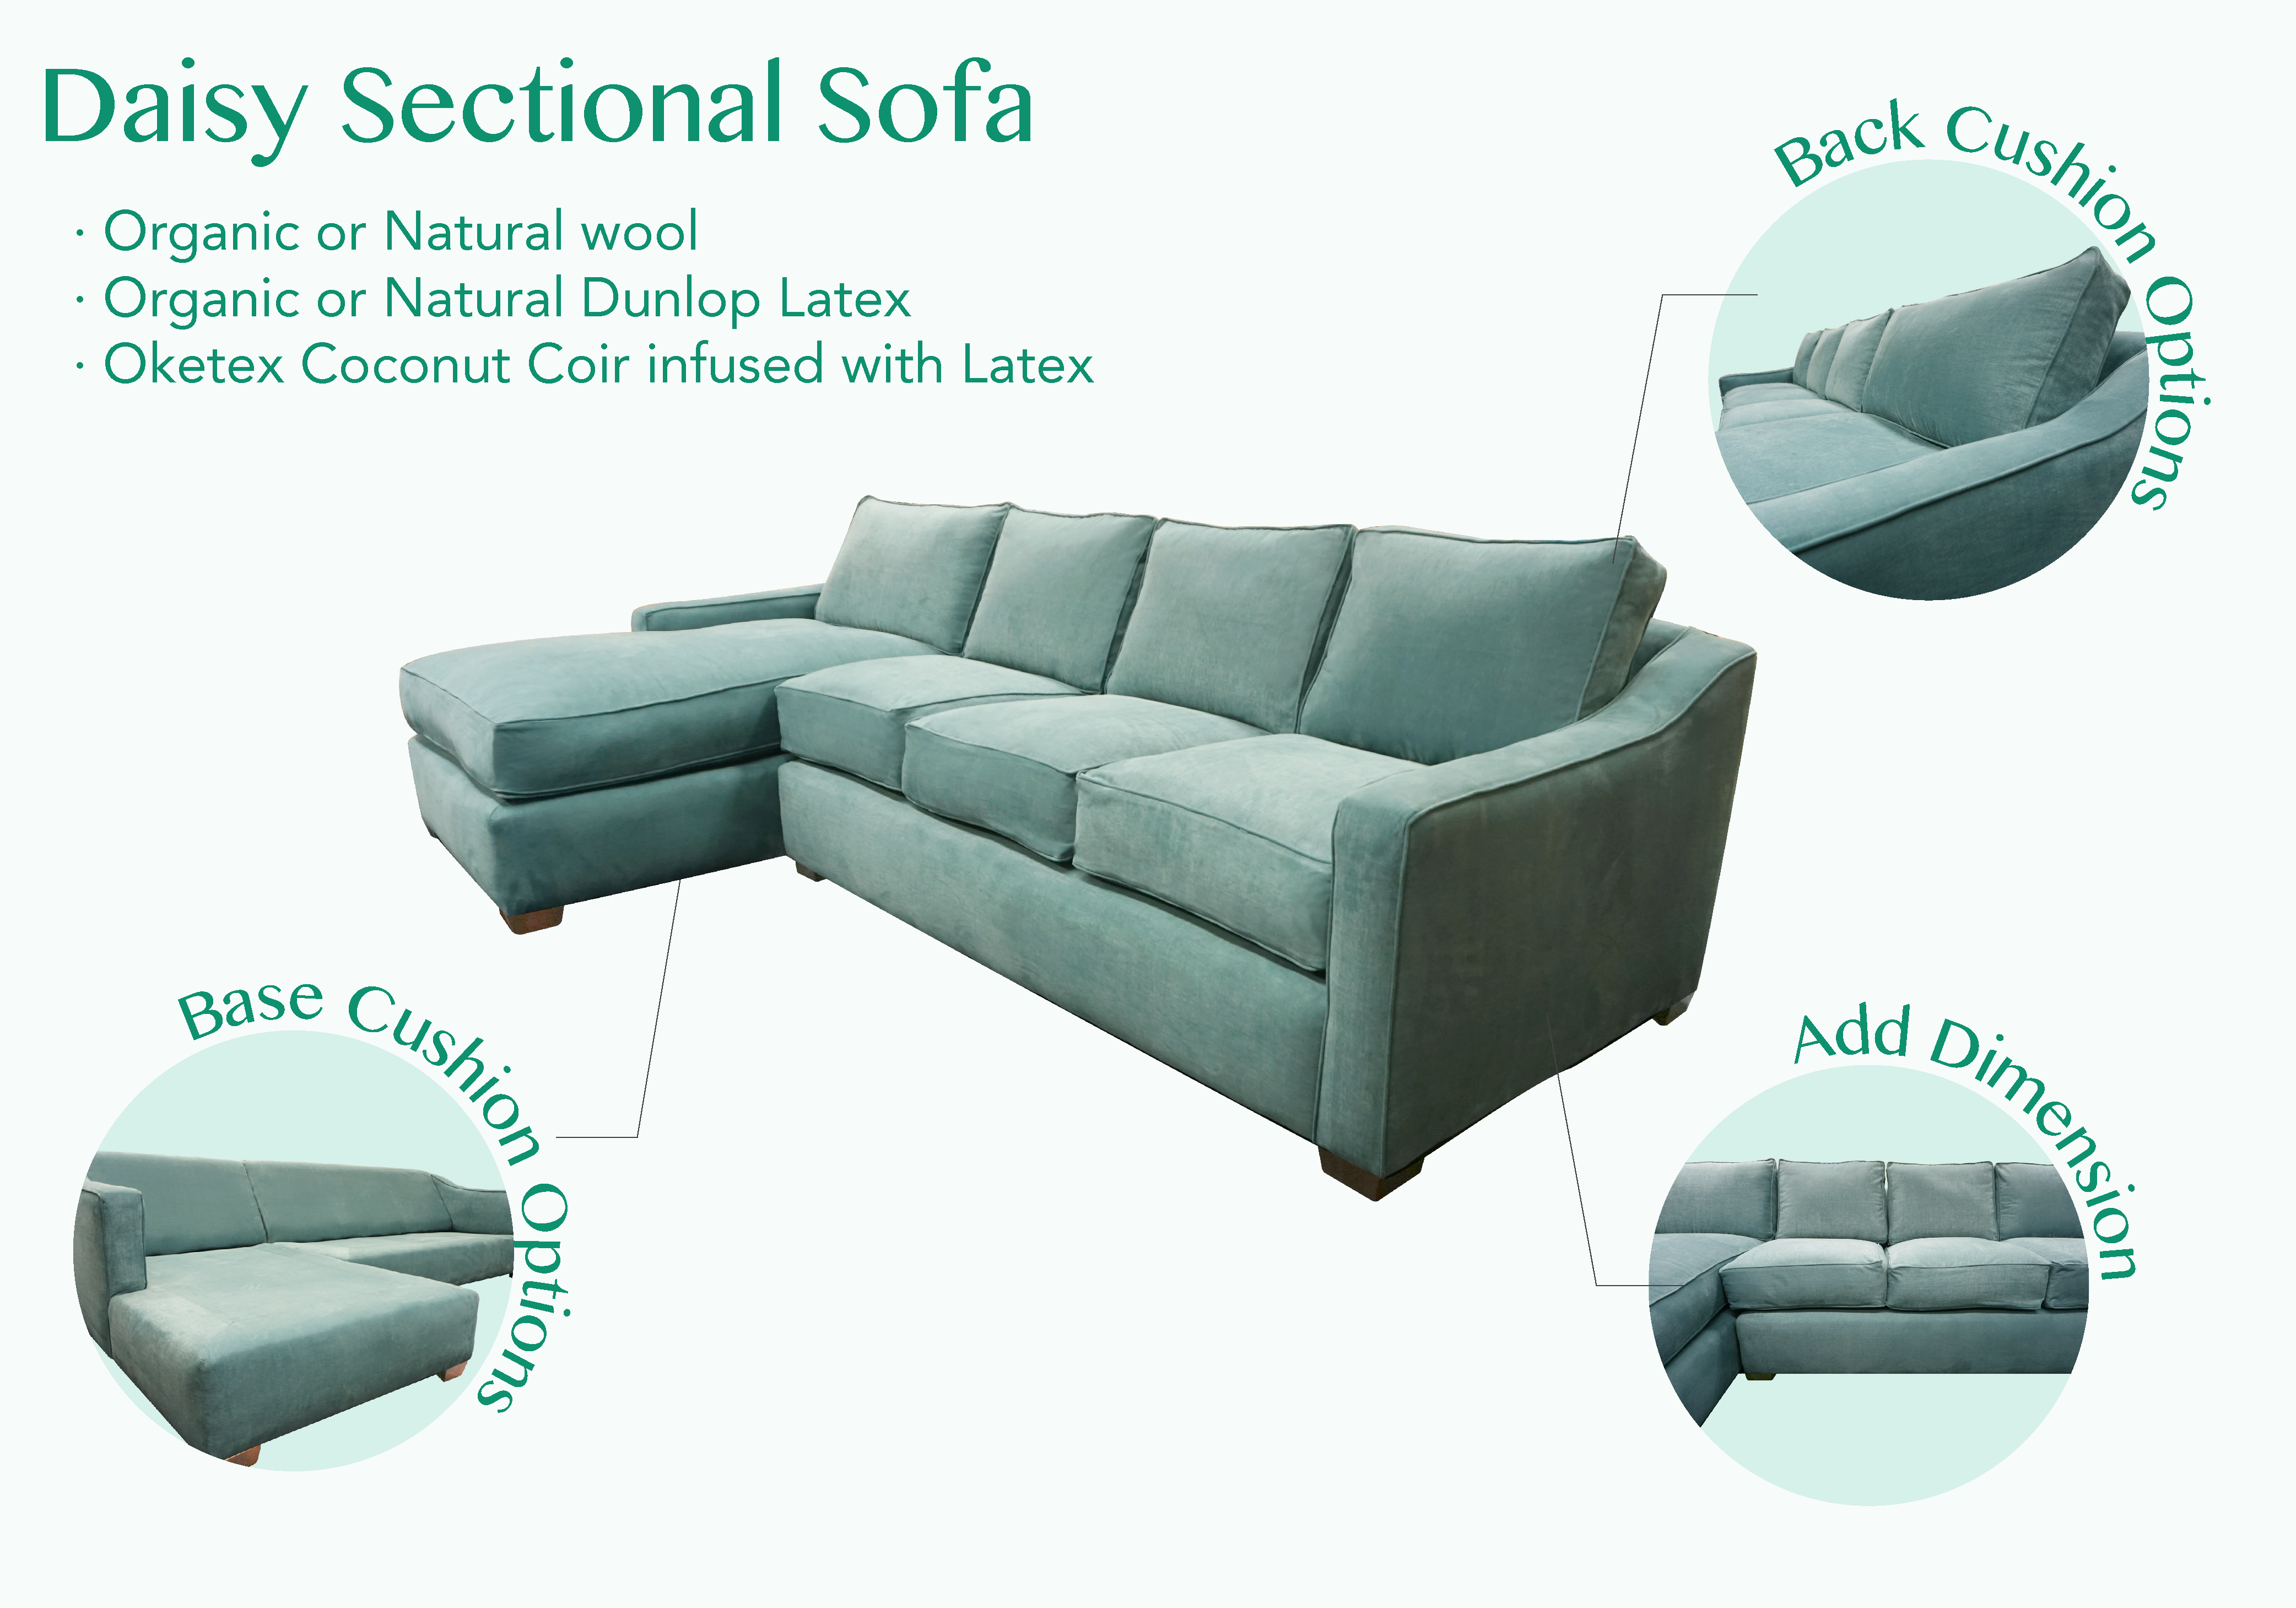 Astonishing Daisy Sectional Sofa Organic And Natural Ingredients In 2019 Spiritservingveterans Wood Chair Design Ideas Spiritservingveteransorg